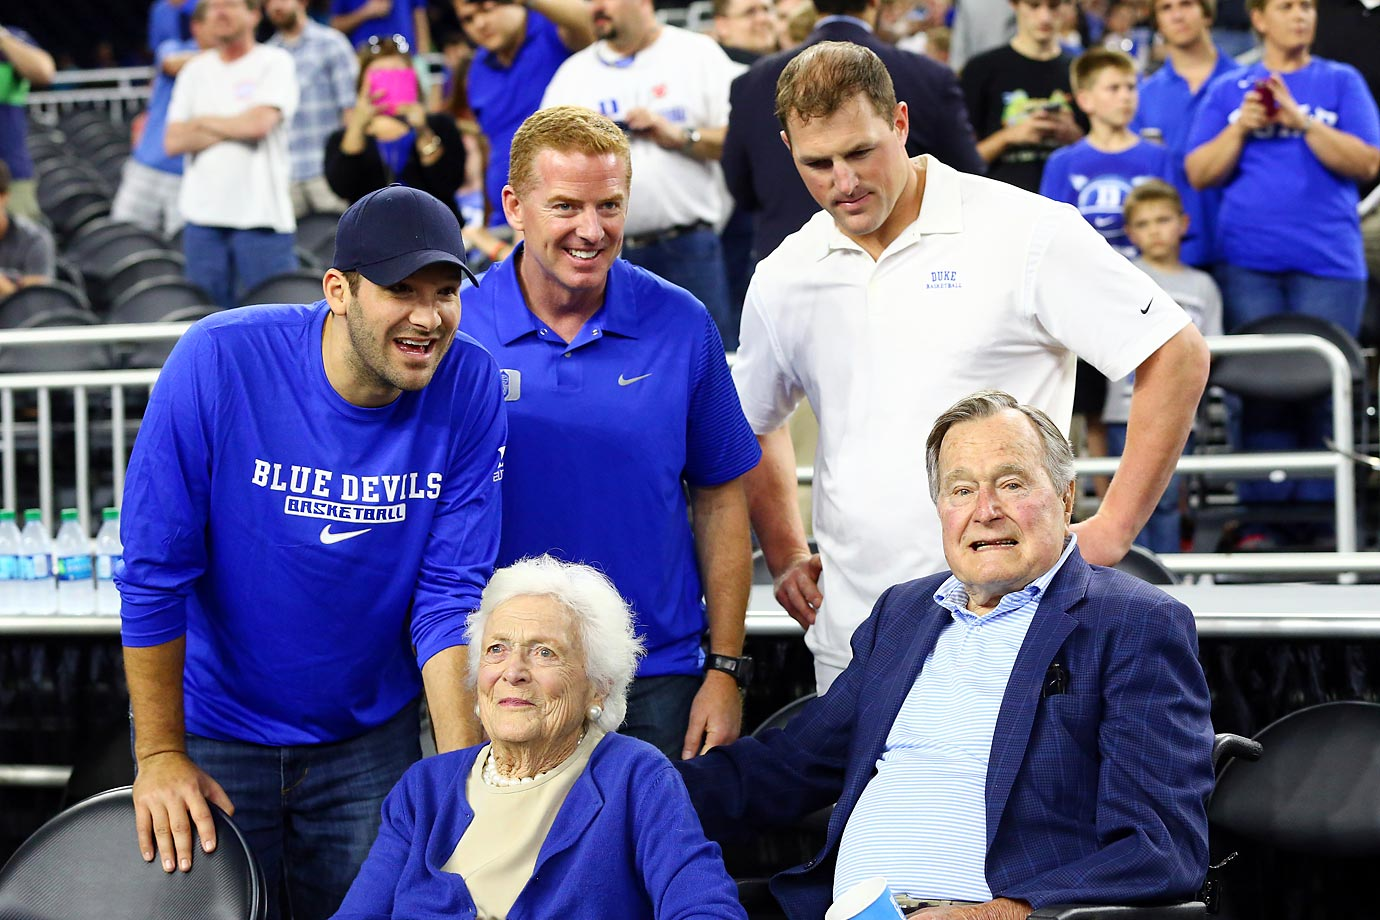 Tony Romo, Jason Garrett and Jason Witten of the Cowboys take in the Duke-Gonzaga game with former First Lady Barbara Bush and former President H.W. Bush.